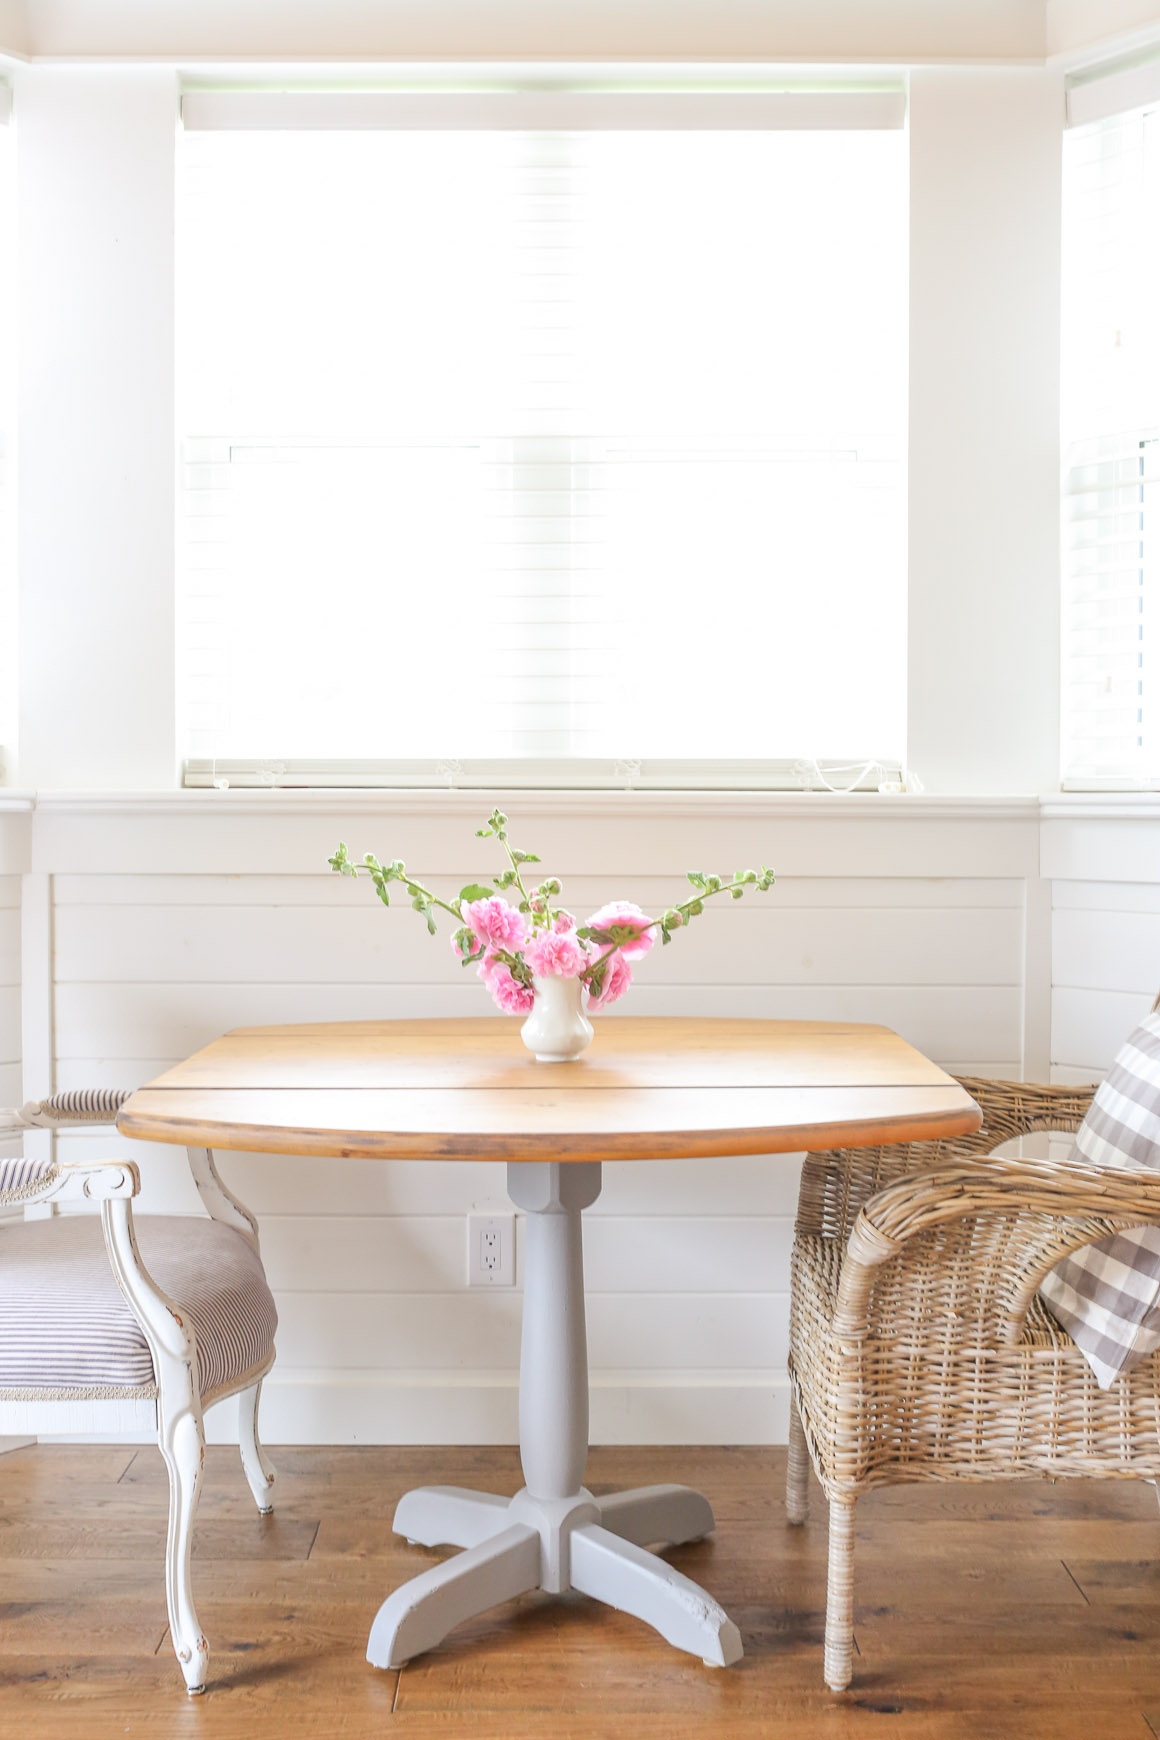 Rustic Refinished Farmhouse Table Makeover by This Mama's Dance - DIY Furniture Makeovers